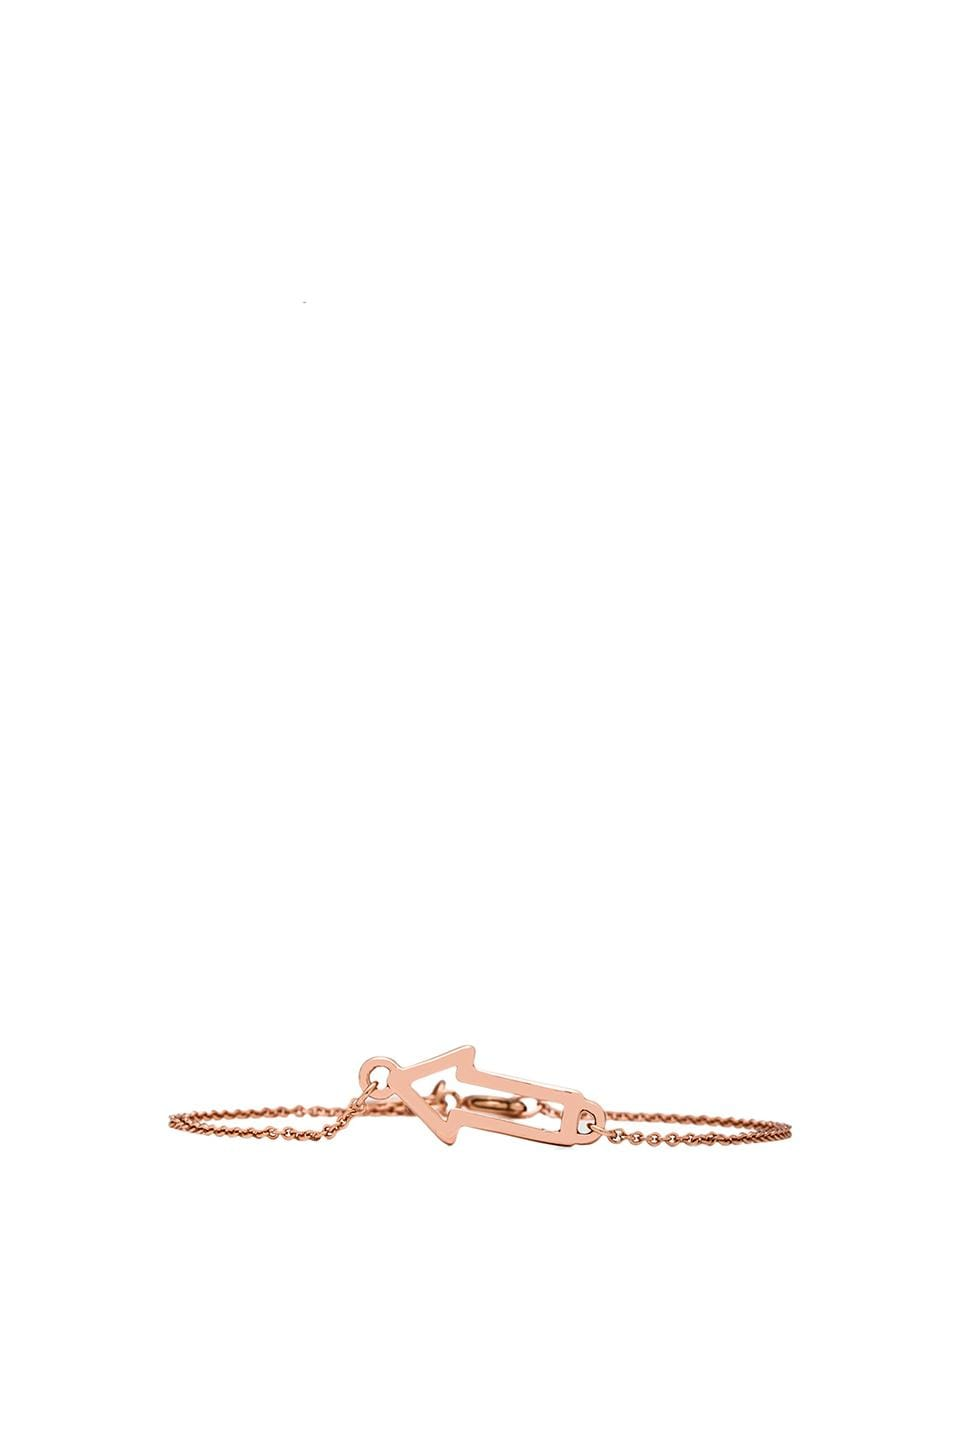 Marc by Marc Jacobs Grab & Go Arrow Bracelet in Rose Gold